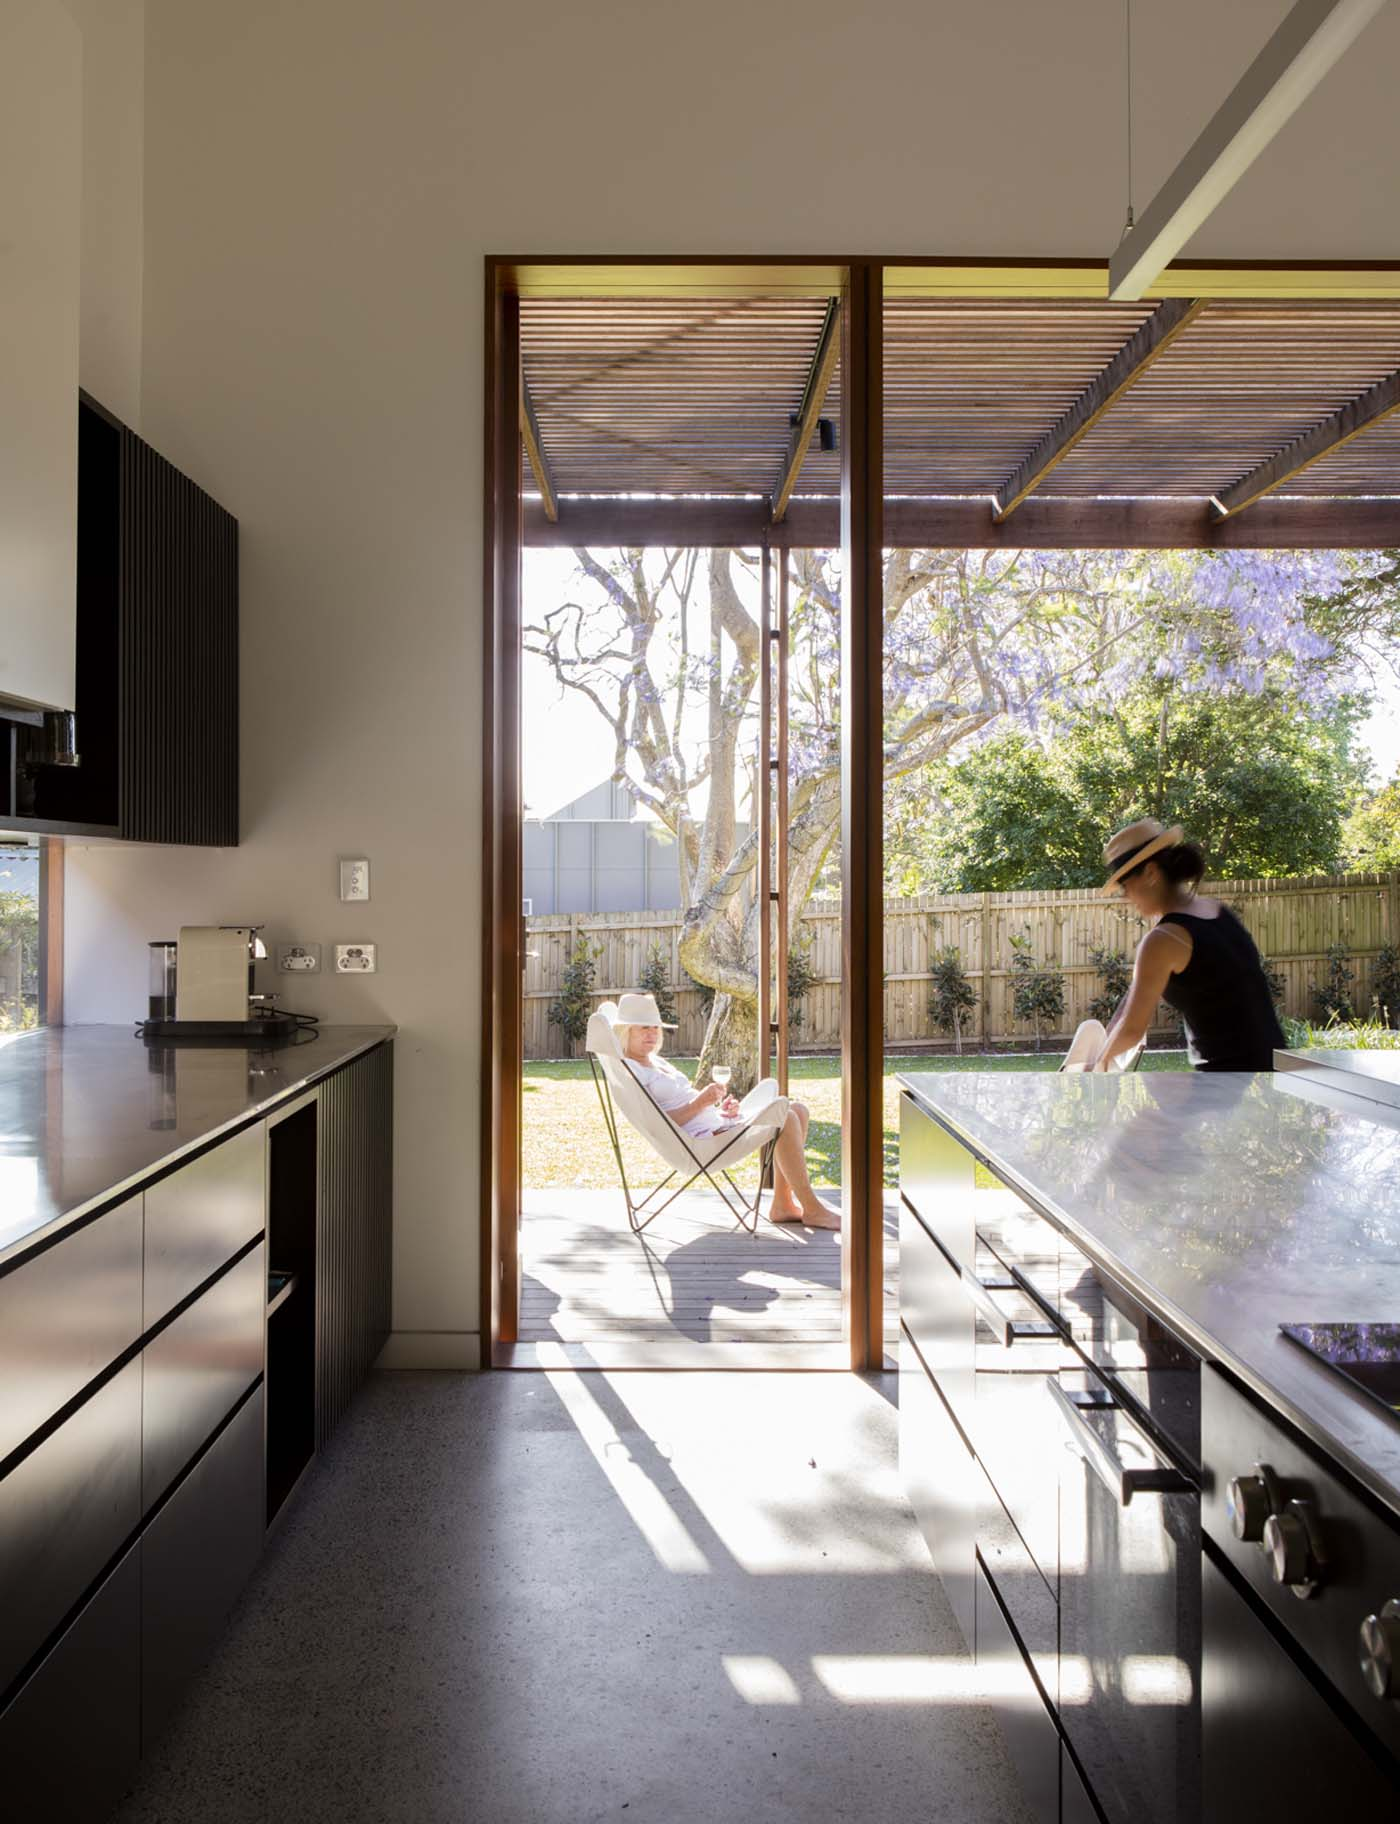 Sung Dobson house by Sam Crawford Architects, Sydney. Generous kitchen leads on to the deck.